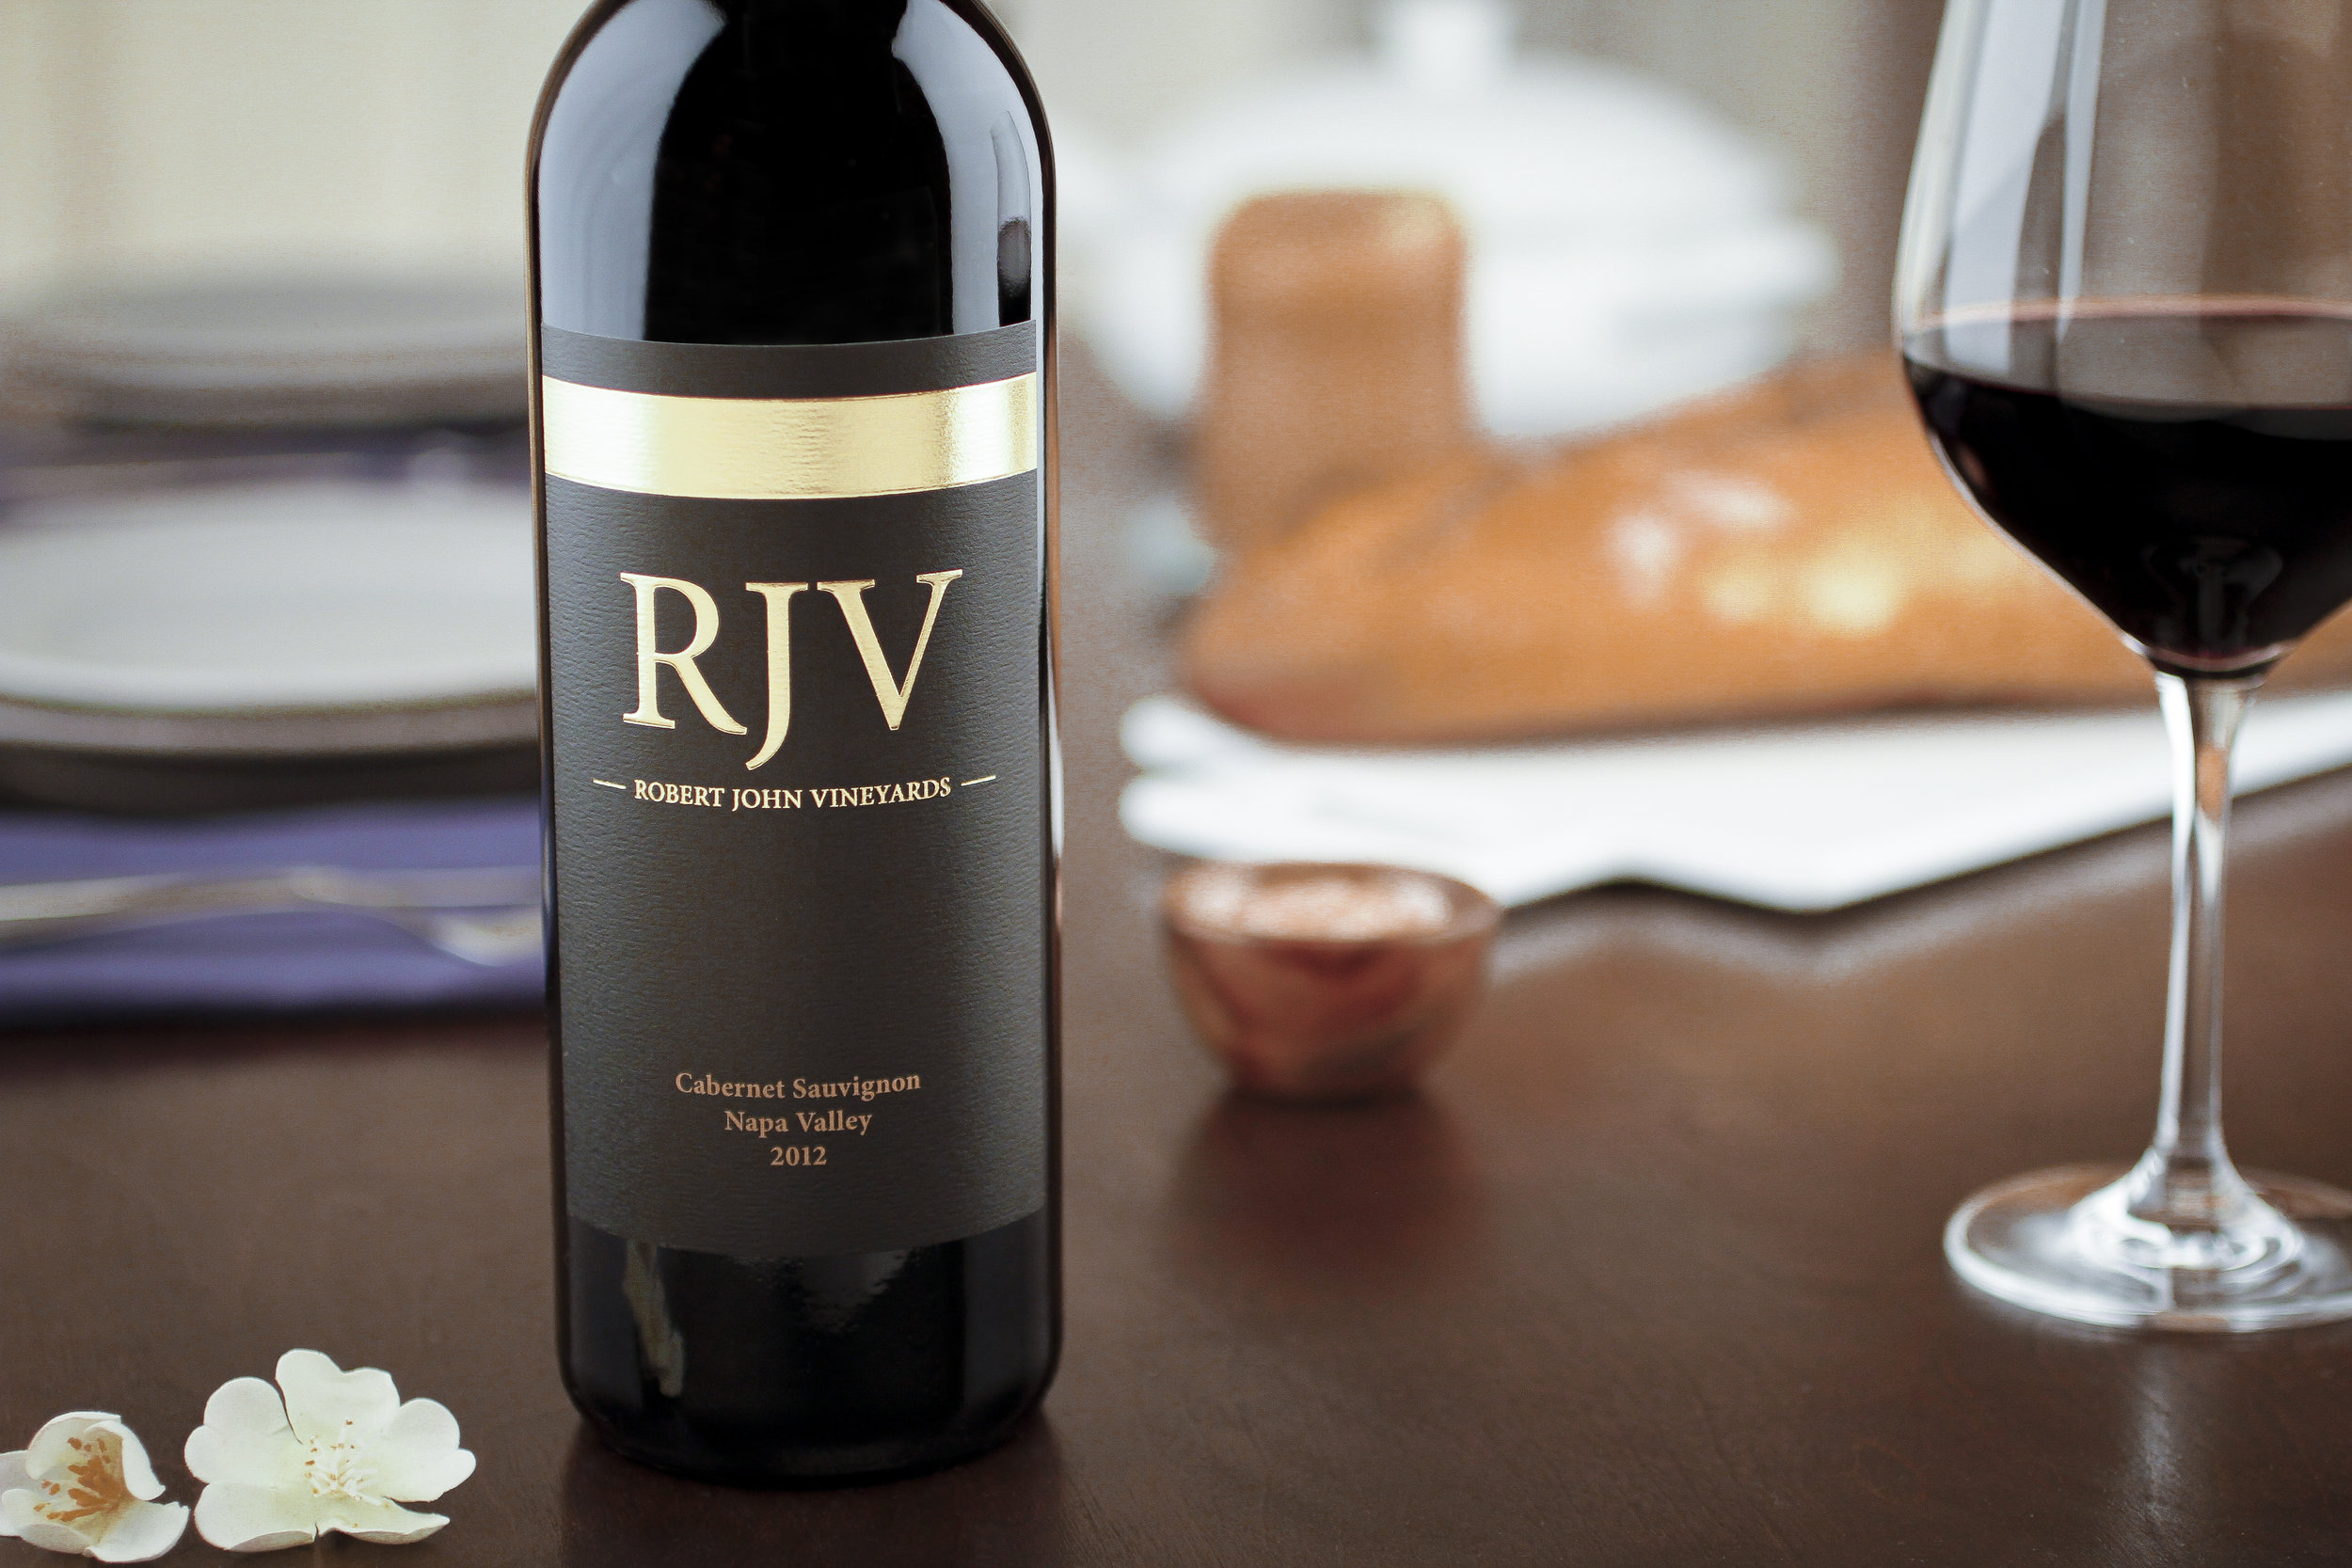 RJV_Beauty_NapaValley_Cab_2012.jpg